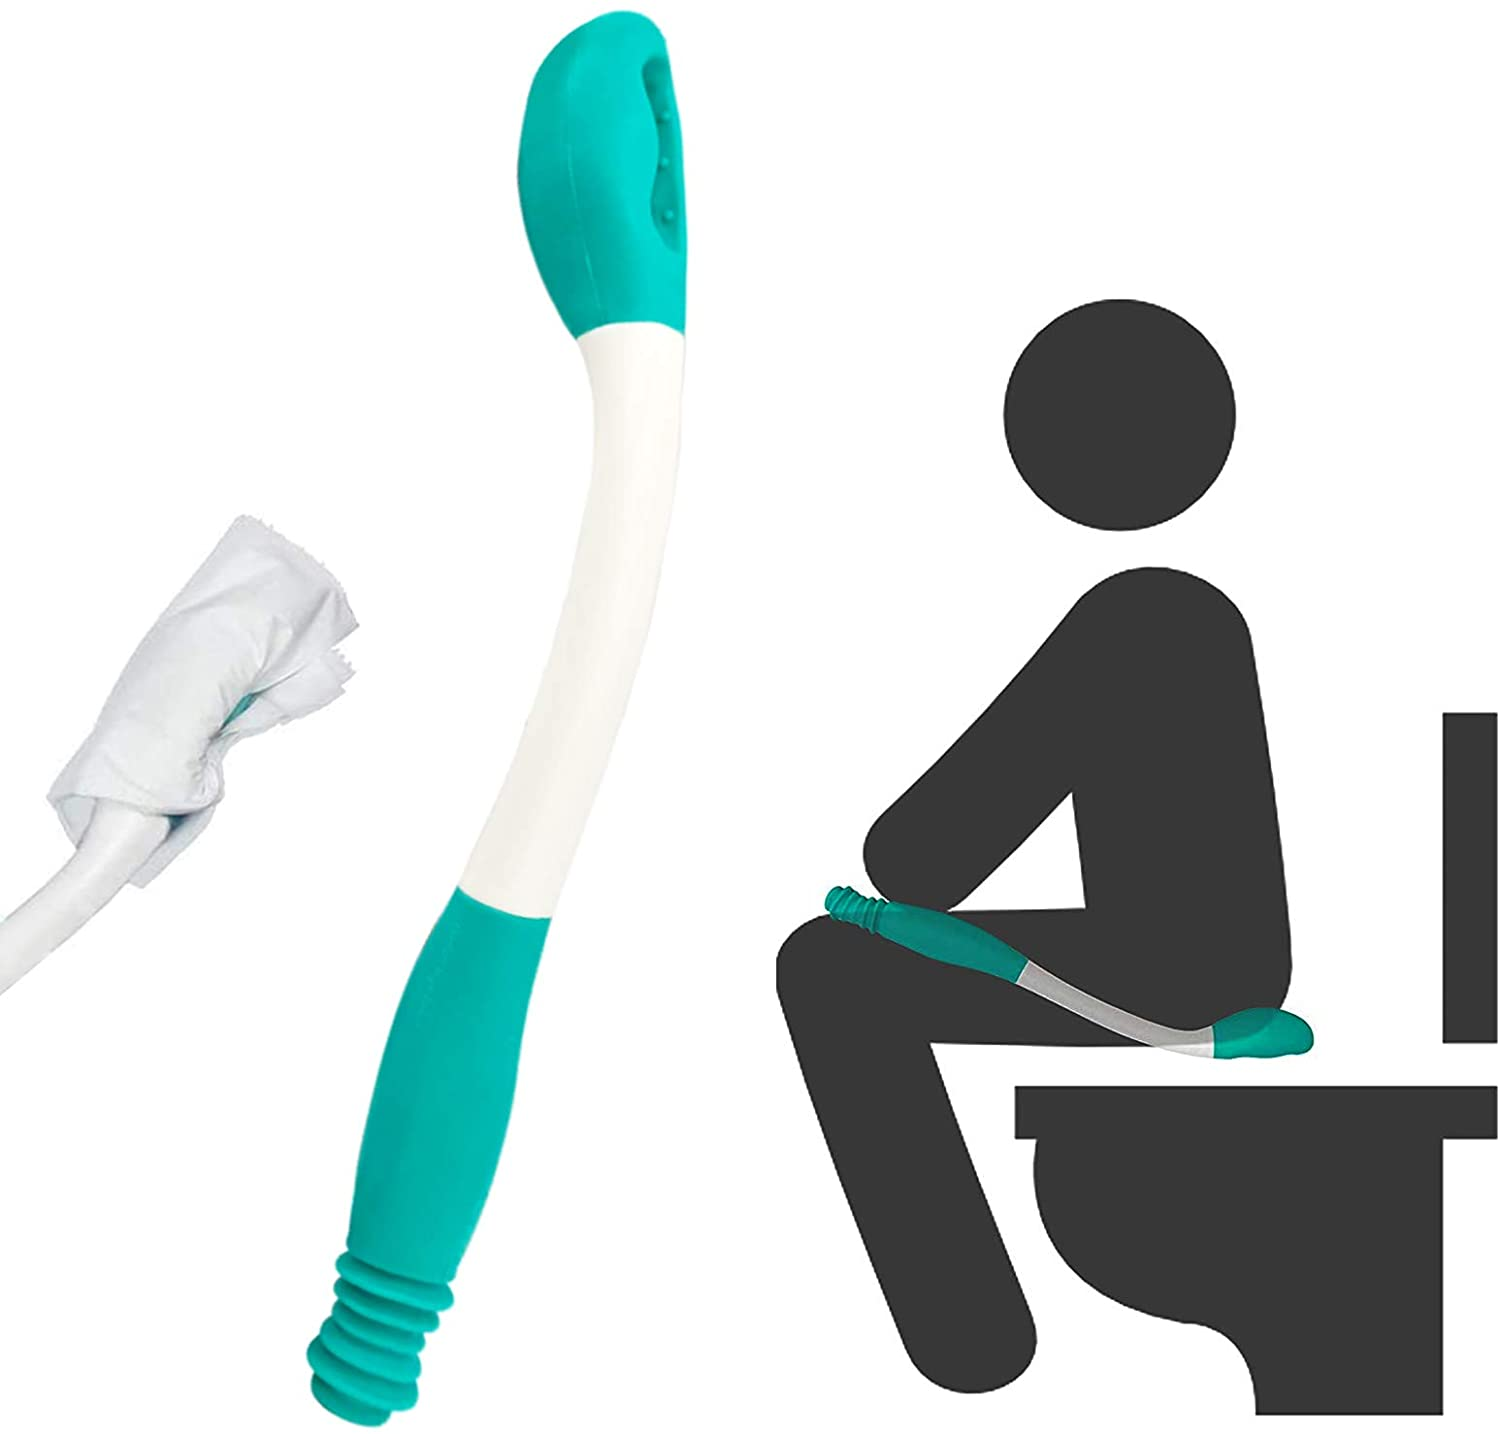 Max Financial sales sale 49% OFF Kirimon Long Reach Comfort Toilet Wiping Aids Tools Self Assis -